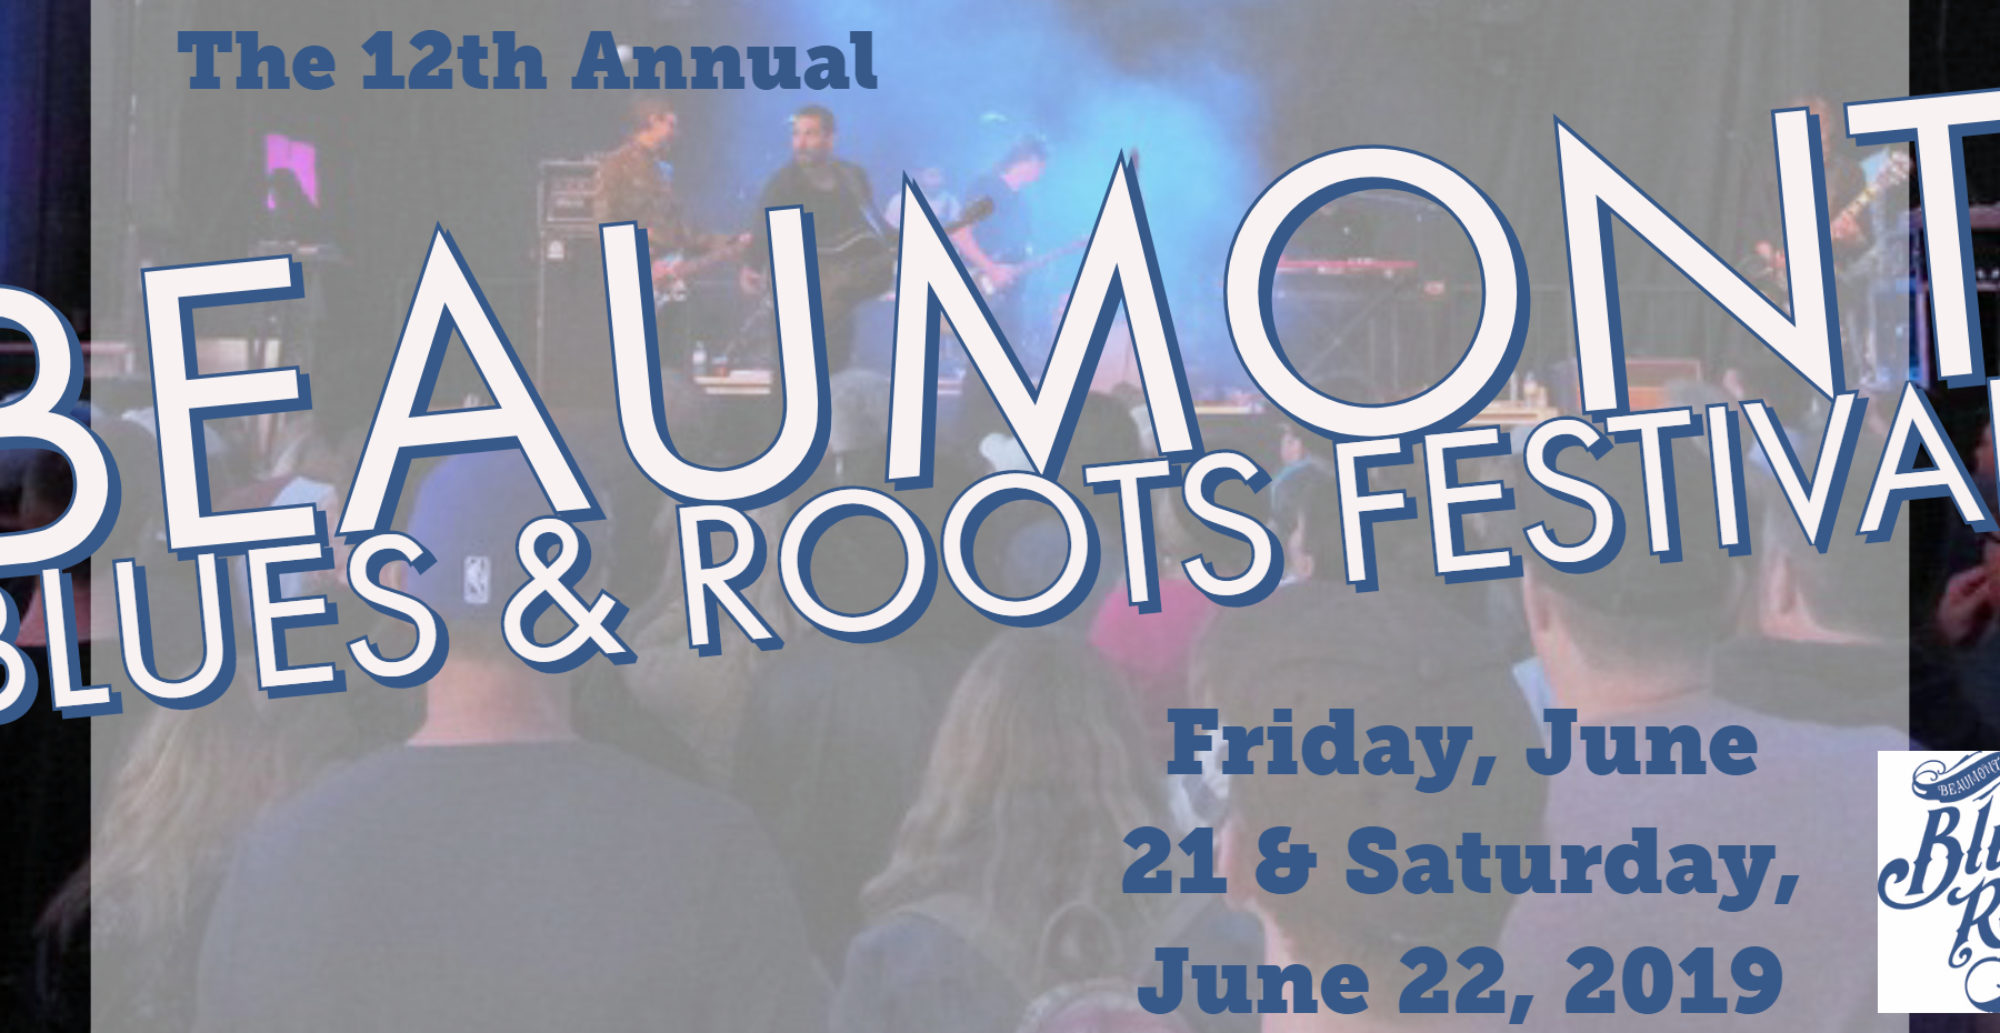 The Beaumont Blues & Roots Festival